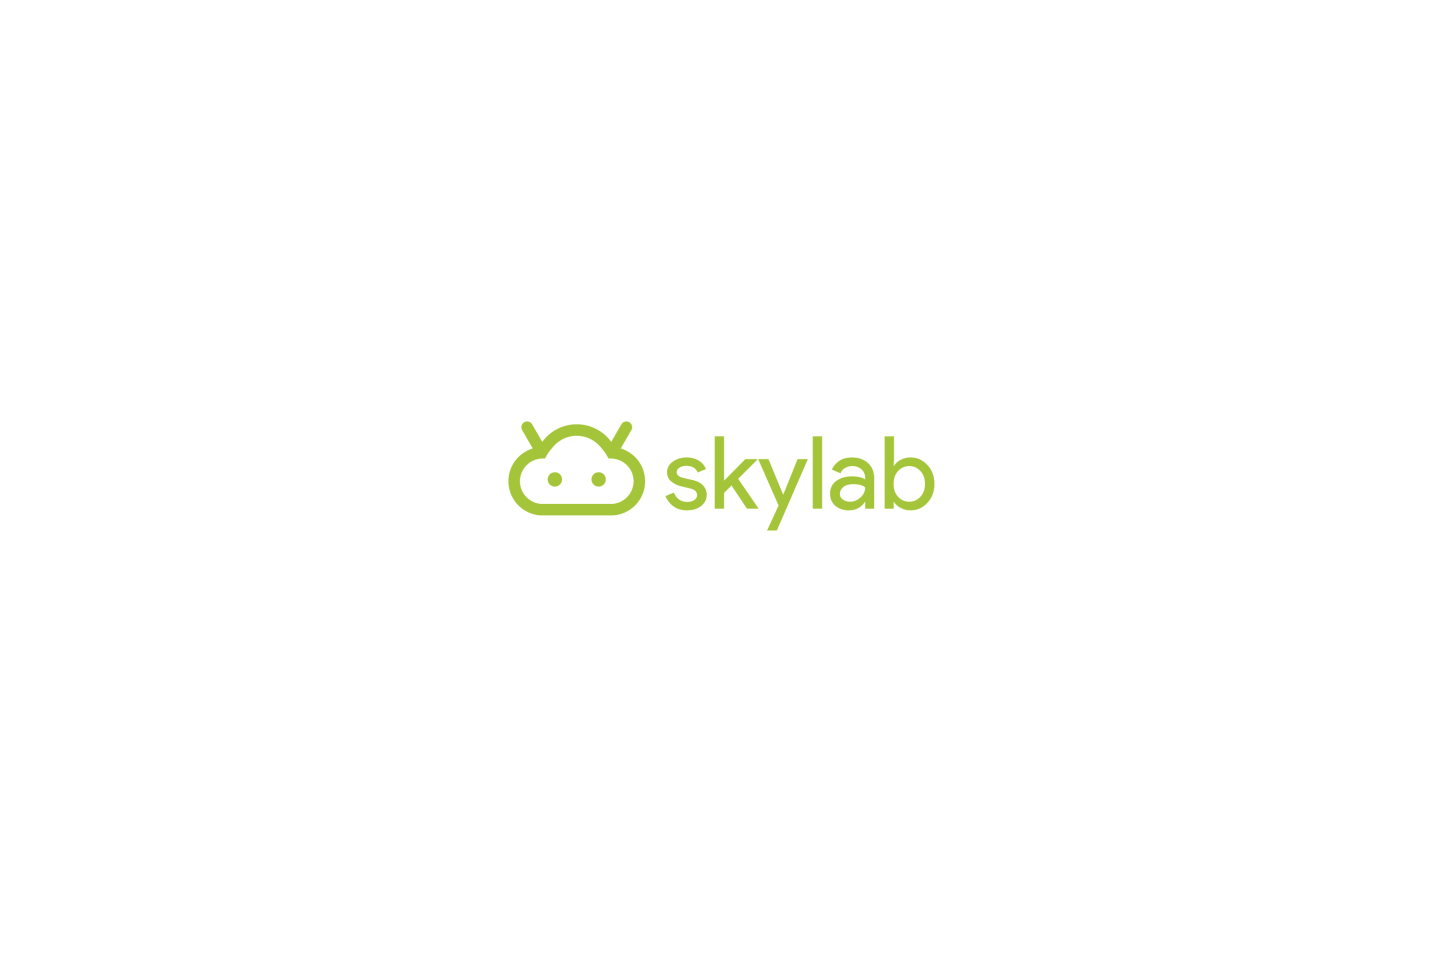 Google Skylab Logo by Jack Morgan